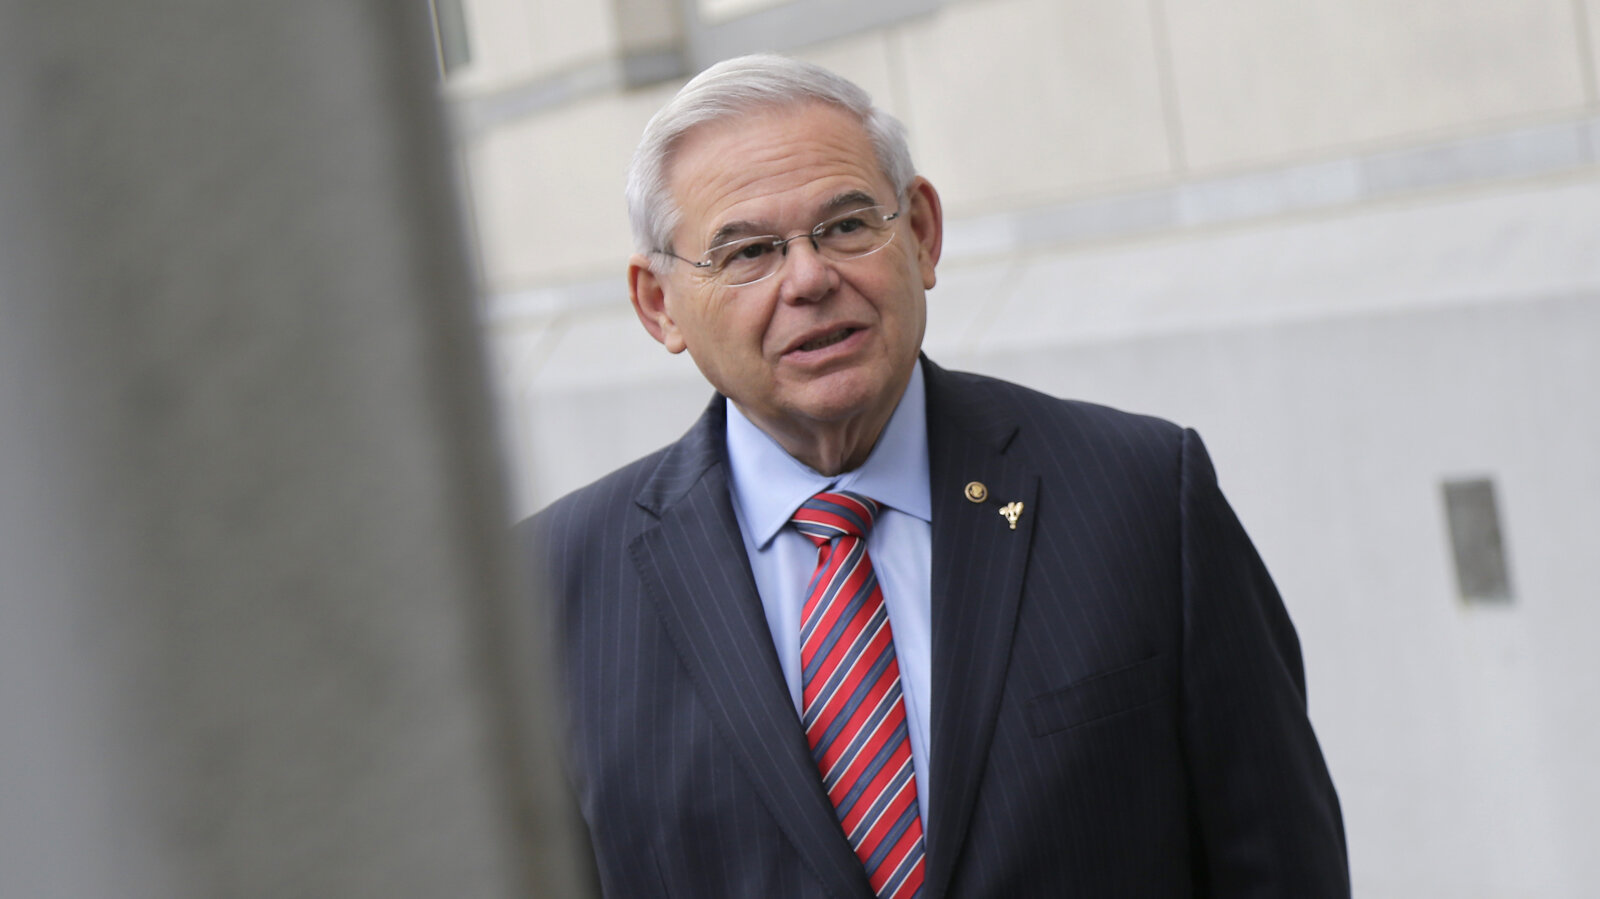 Judge declares mistrial after jury deadlocks in Menendez corruption trial